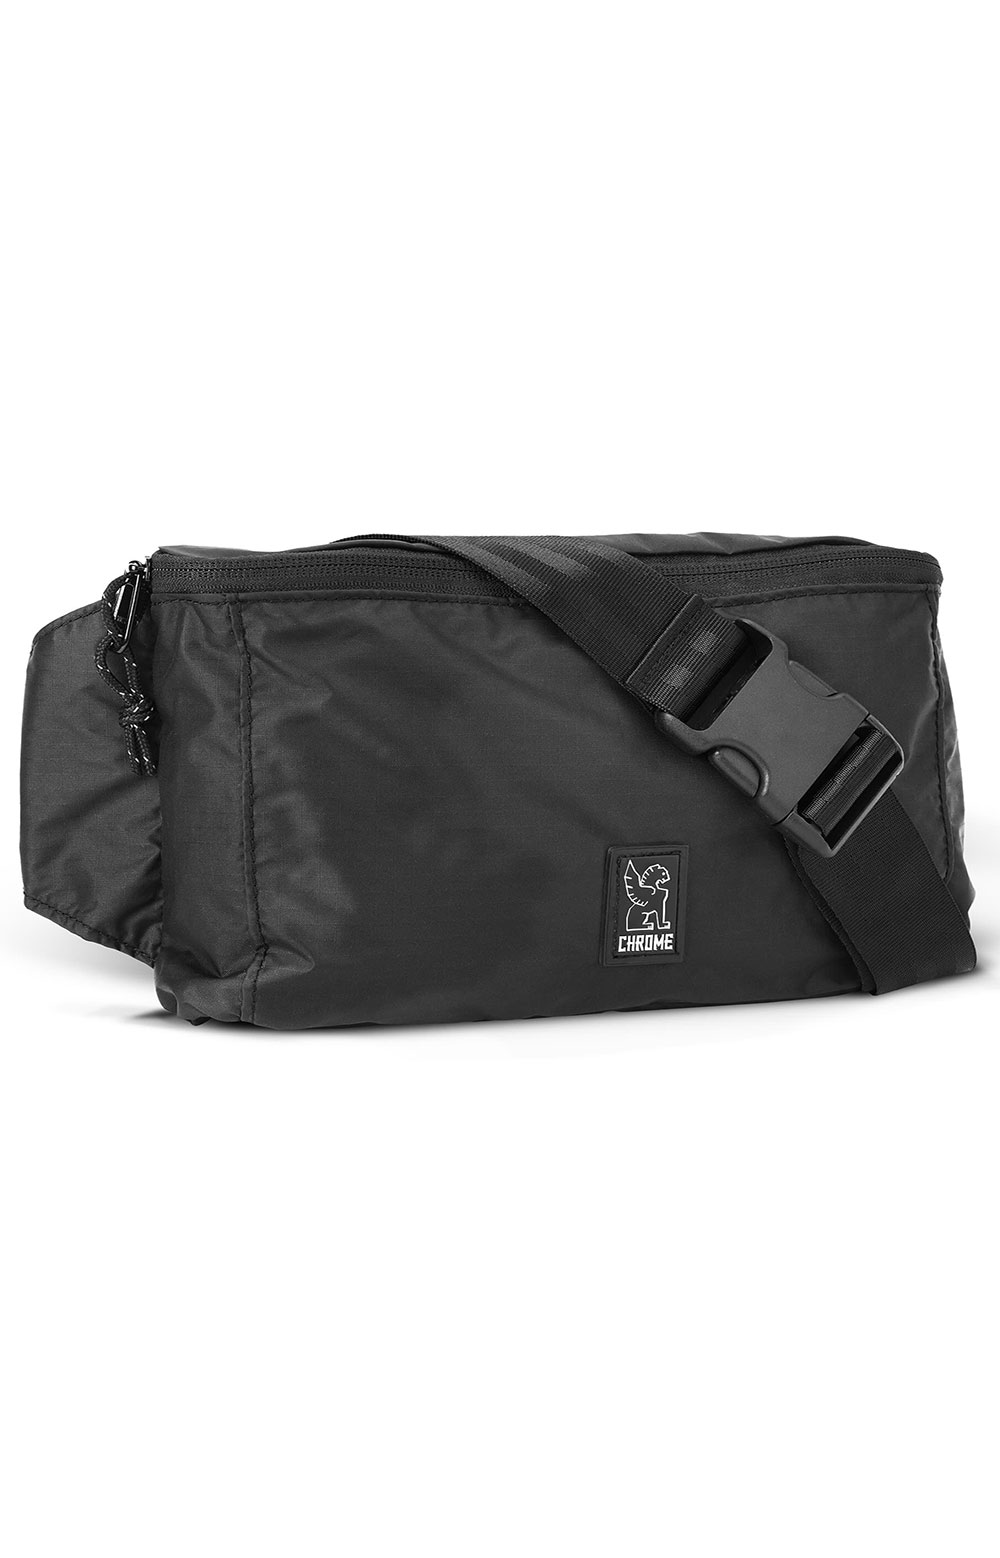 (BG-300-BK) Packable Waistpack - Black 2